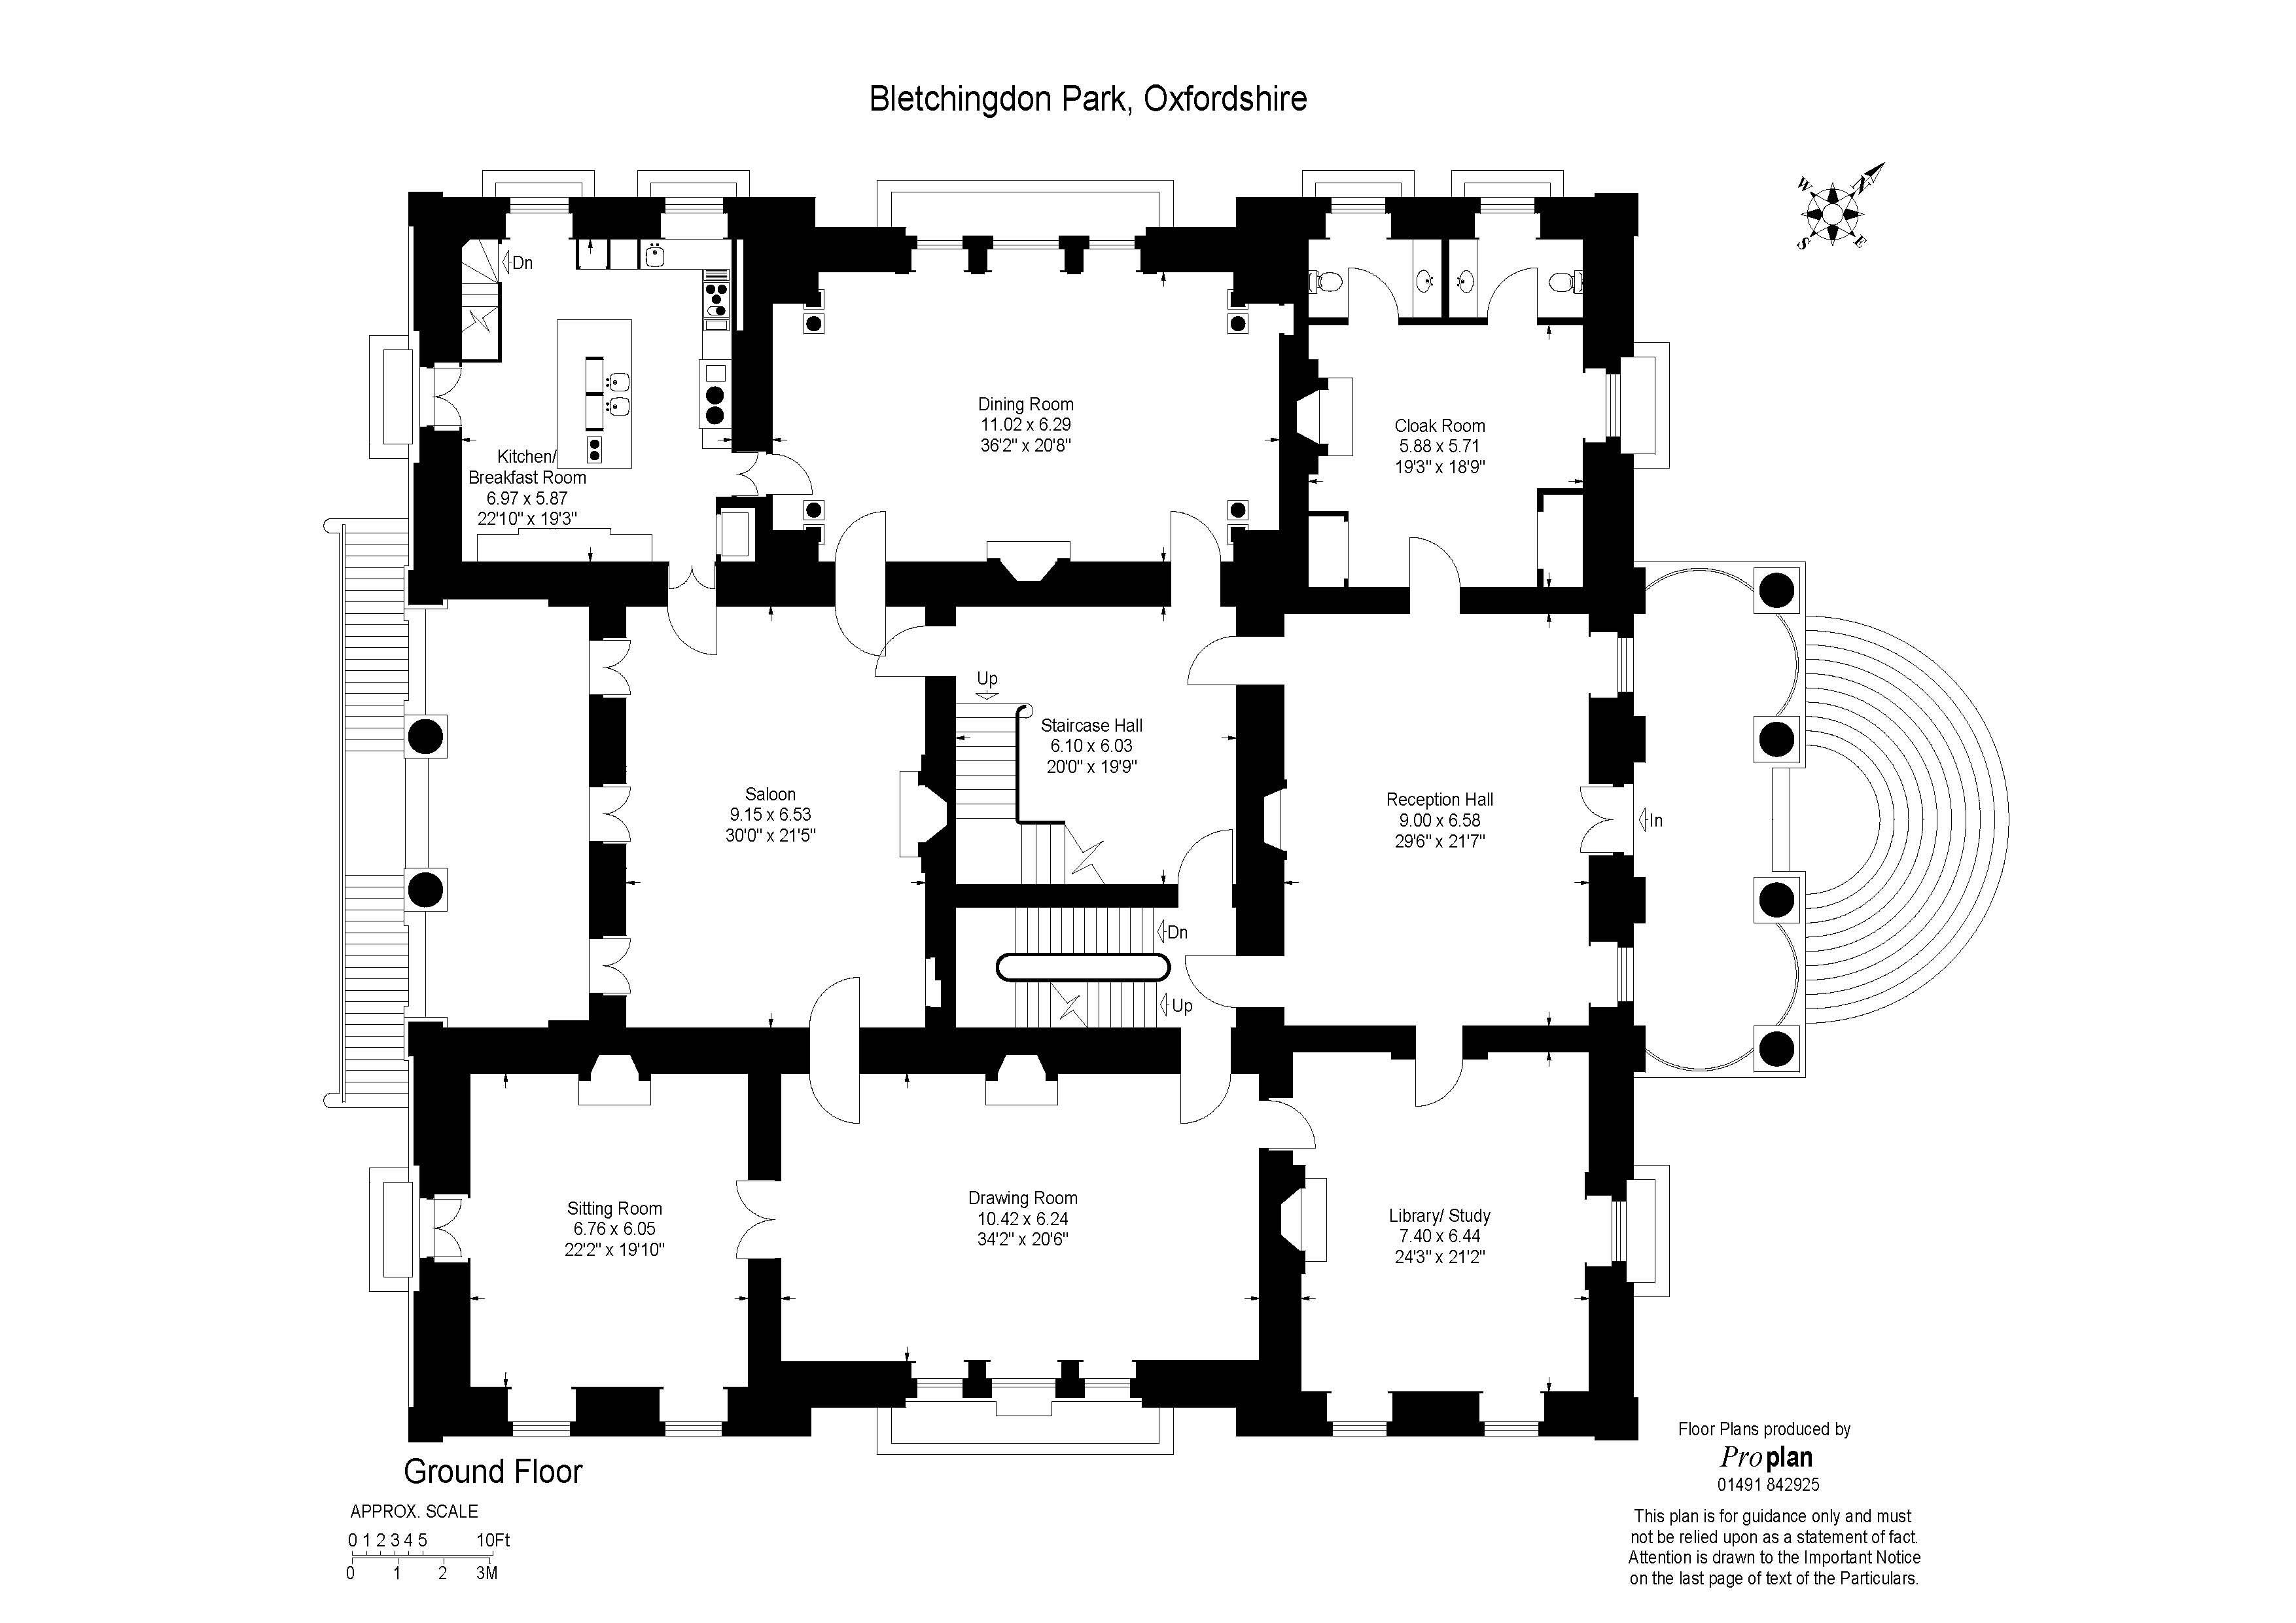 Period Floor Plans, H Floor Plans Historic, Historical Floor, Castle Plans,  Plans Castles, Bletchingdon Park, Plan Houses, House Plans, 4 Houses